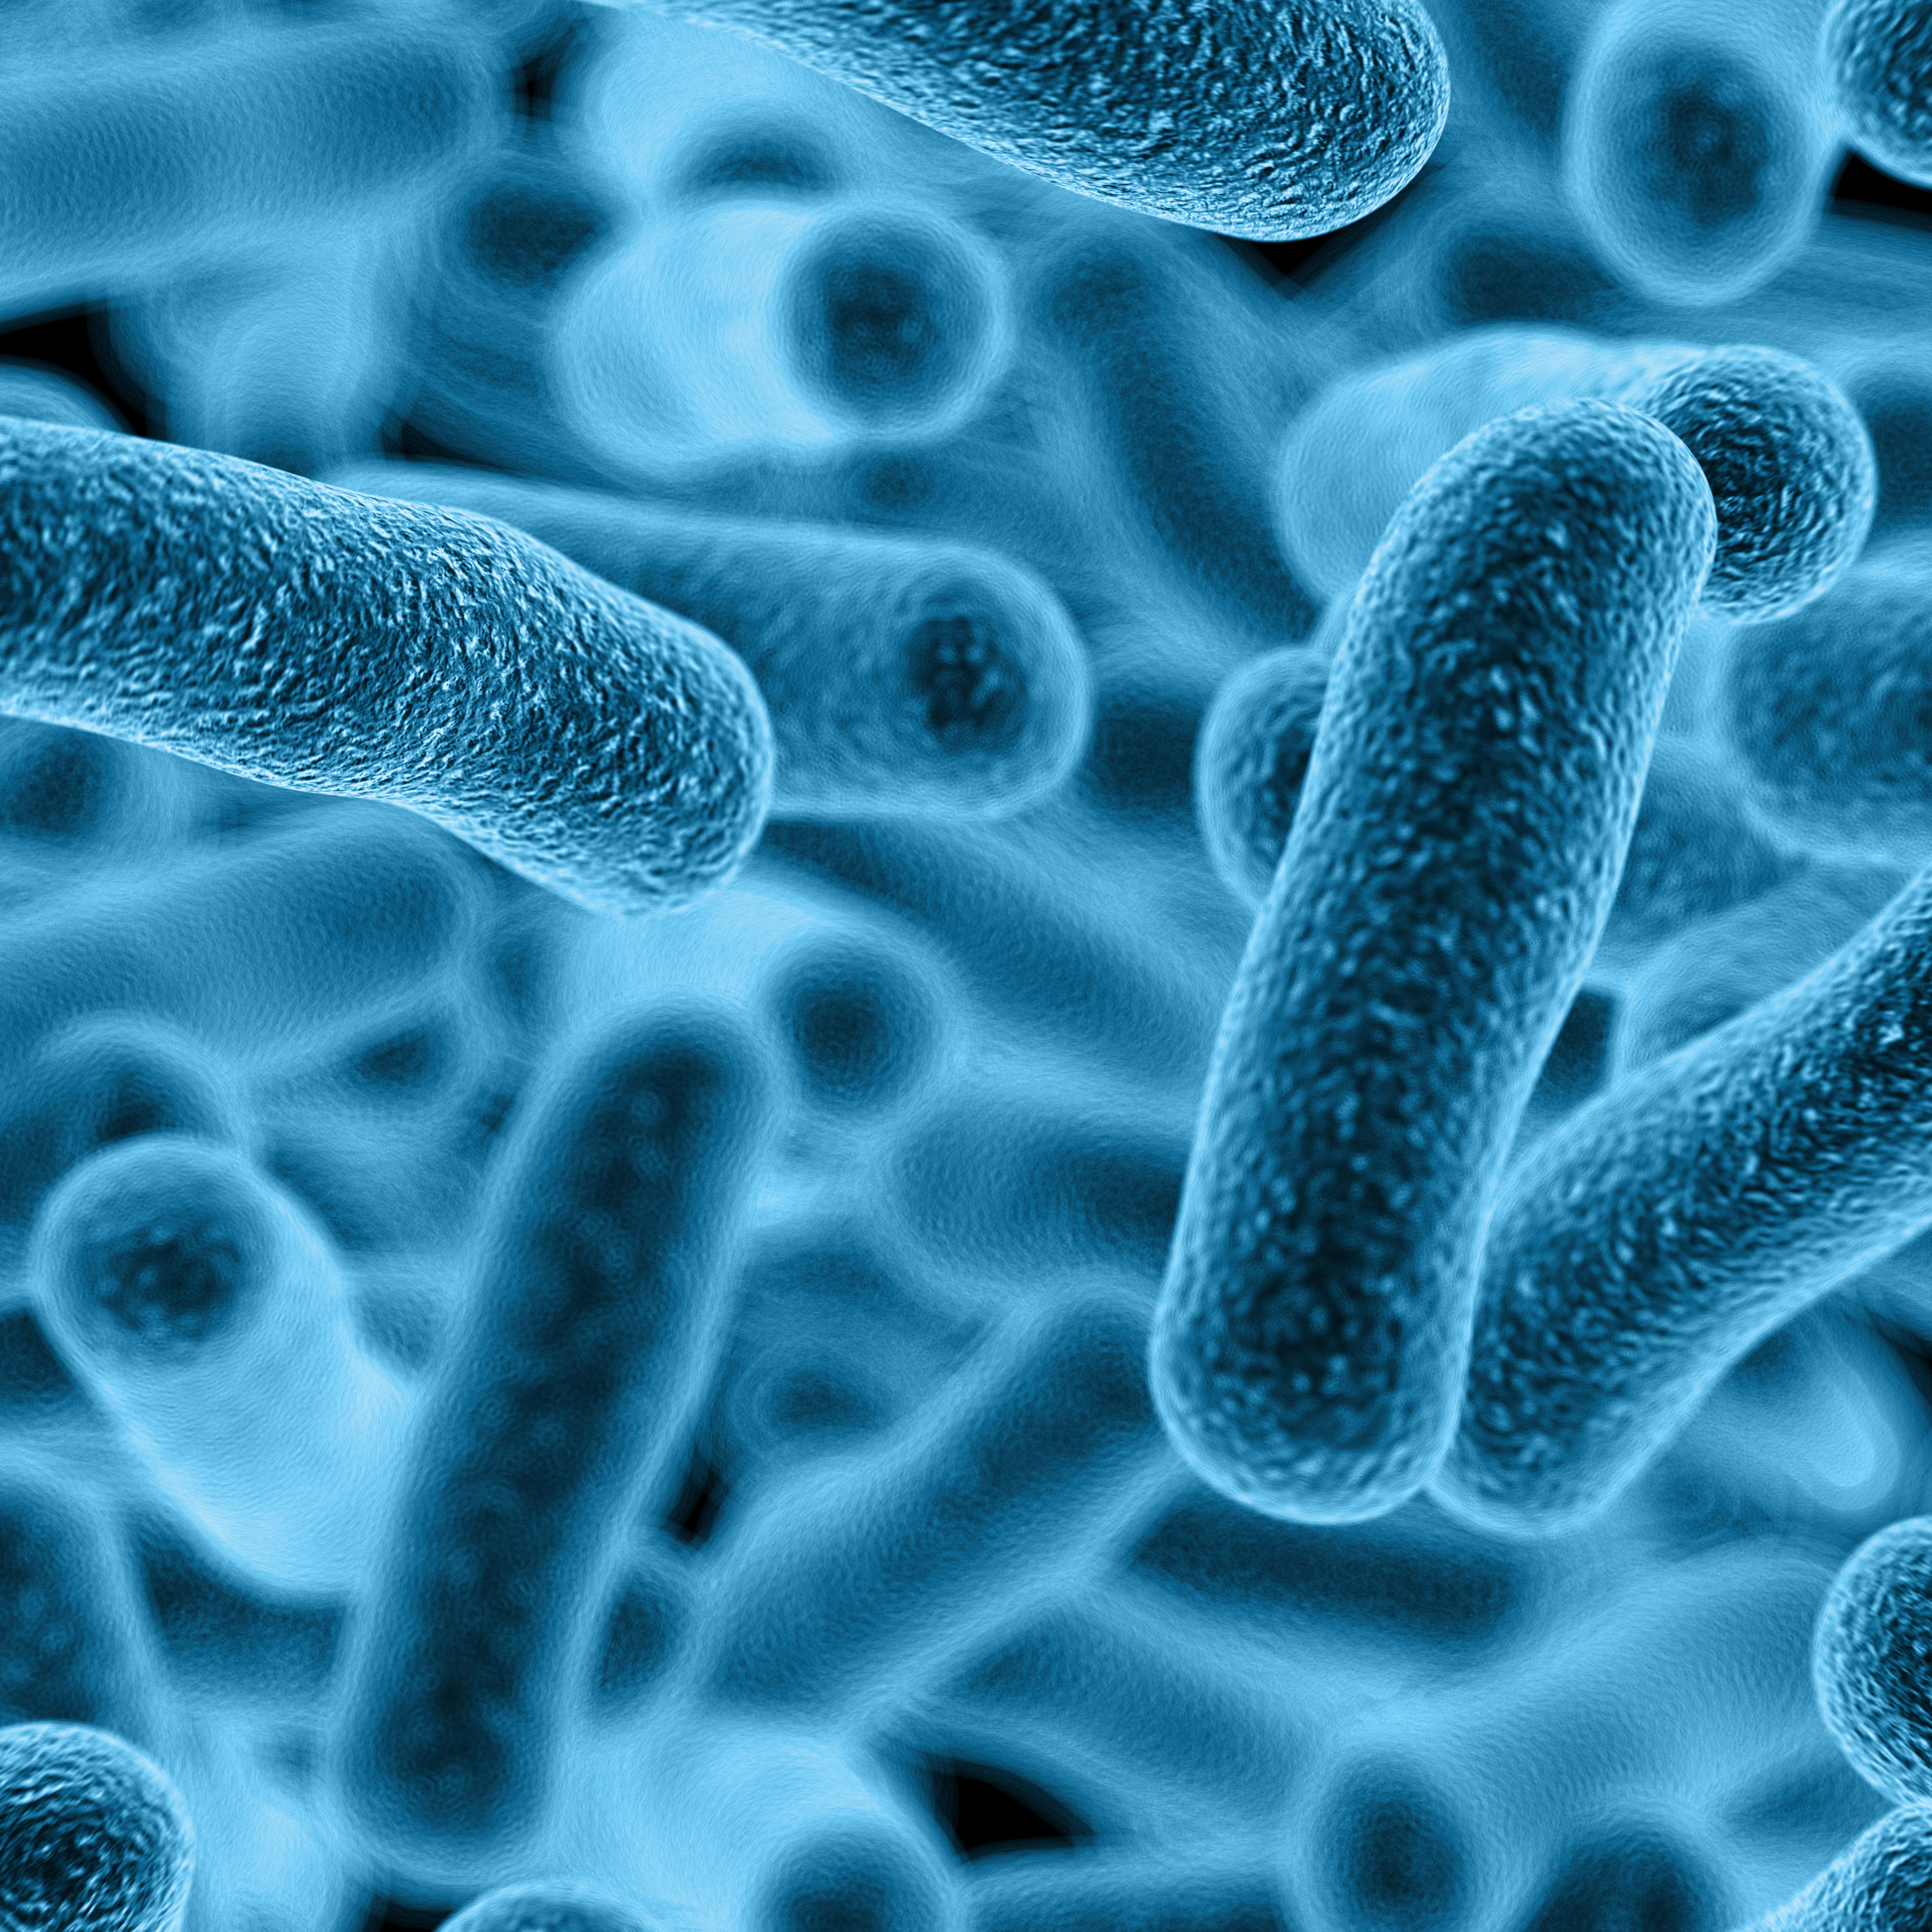 biocompatibility study of lactobacillus casei In this study, 15 lactobacillus isolates were found to produce biosurfactants in the mid-exponential and stationary growth phases the stationary-phase biosurfactants from lactobacillus.